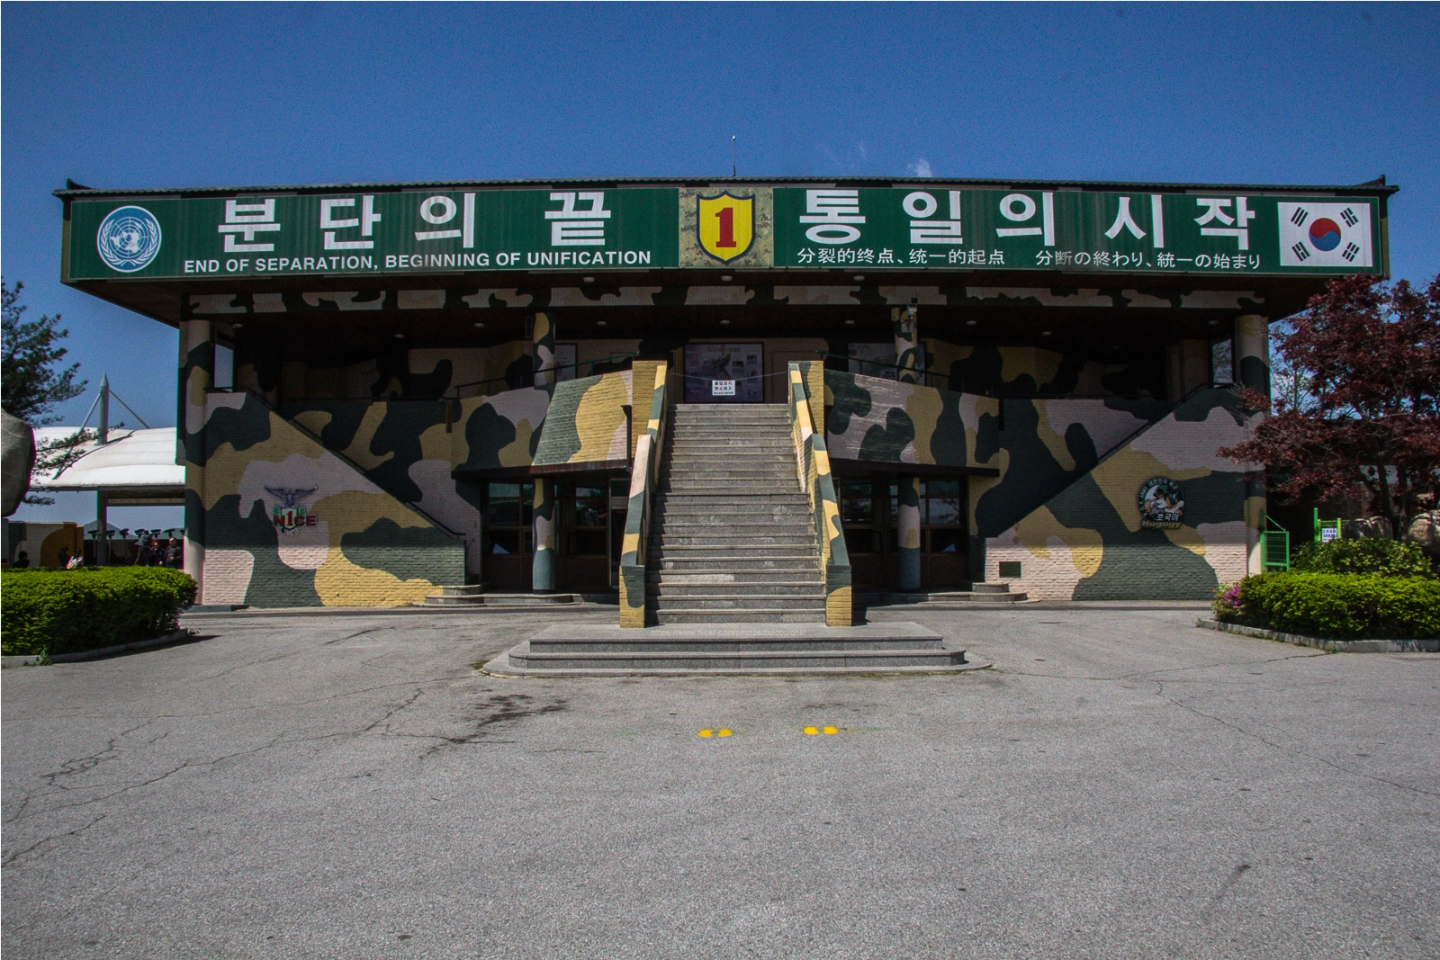 DMZ - Demilitarized Zone between the Koreas